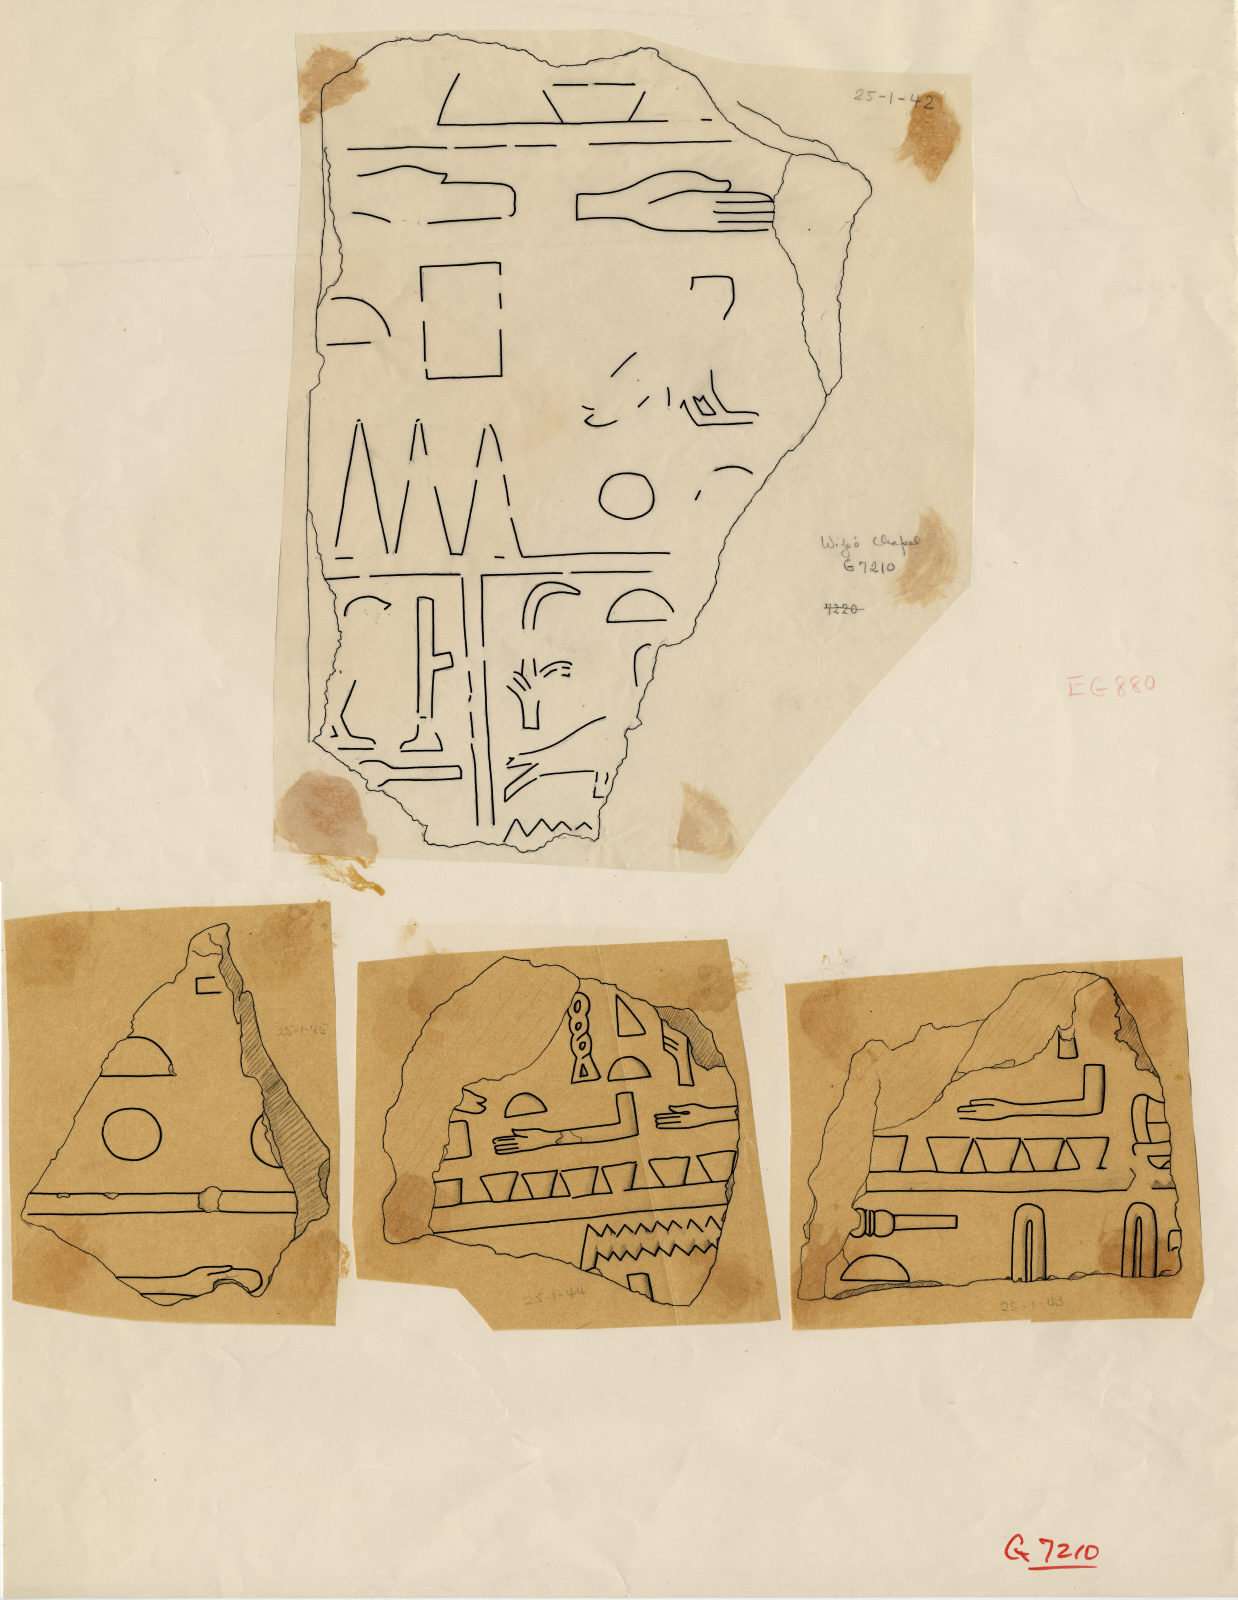 Drawings: G 7210-7220: G 7210: fragments of relief